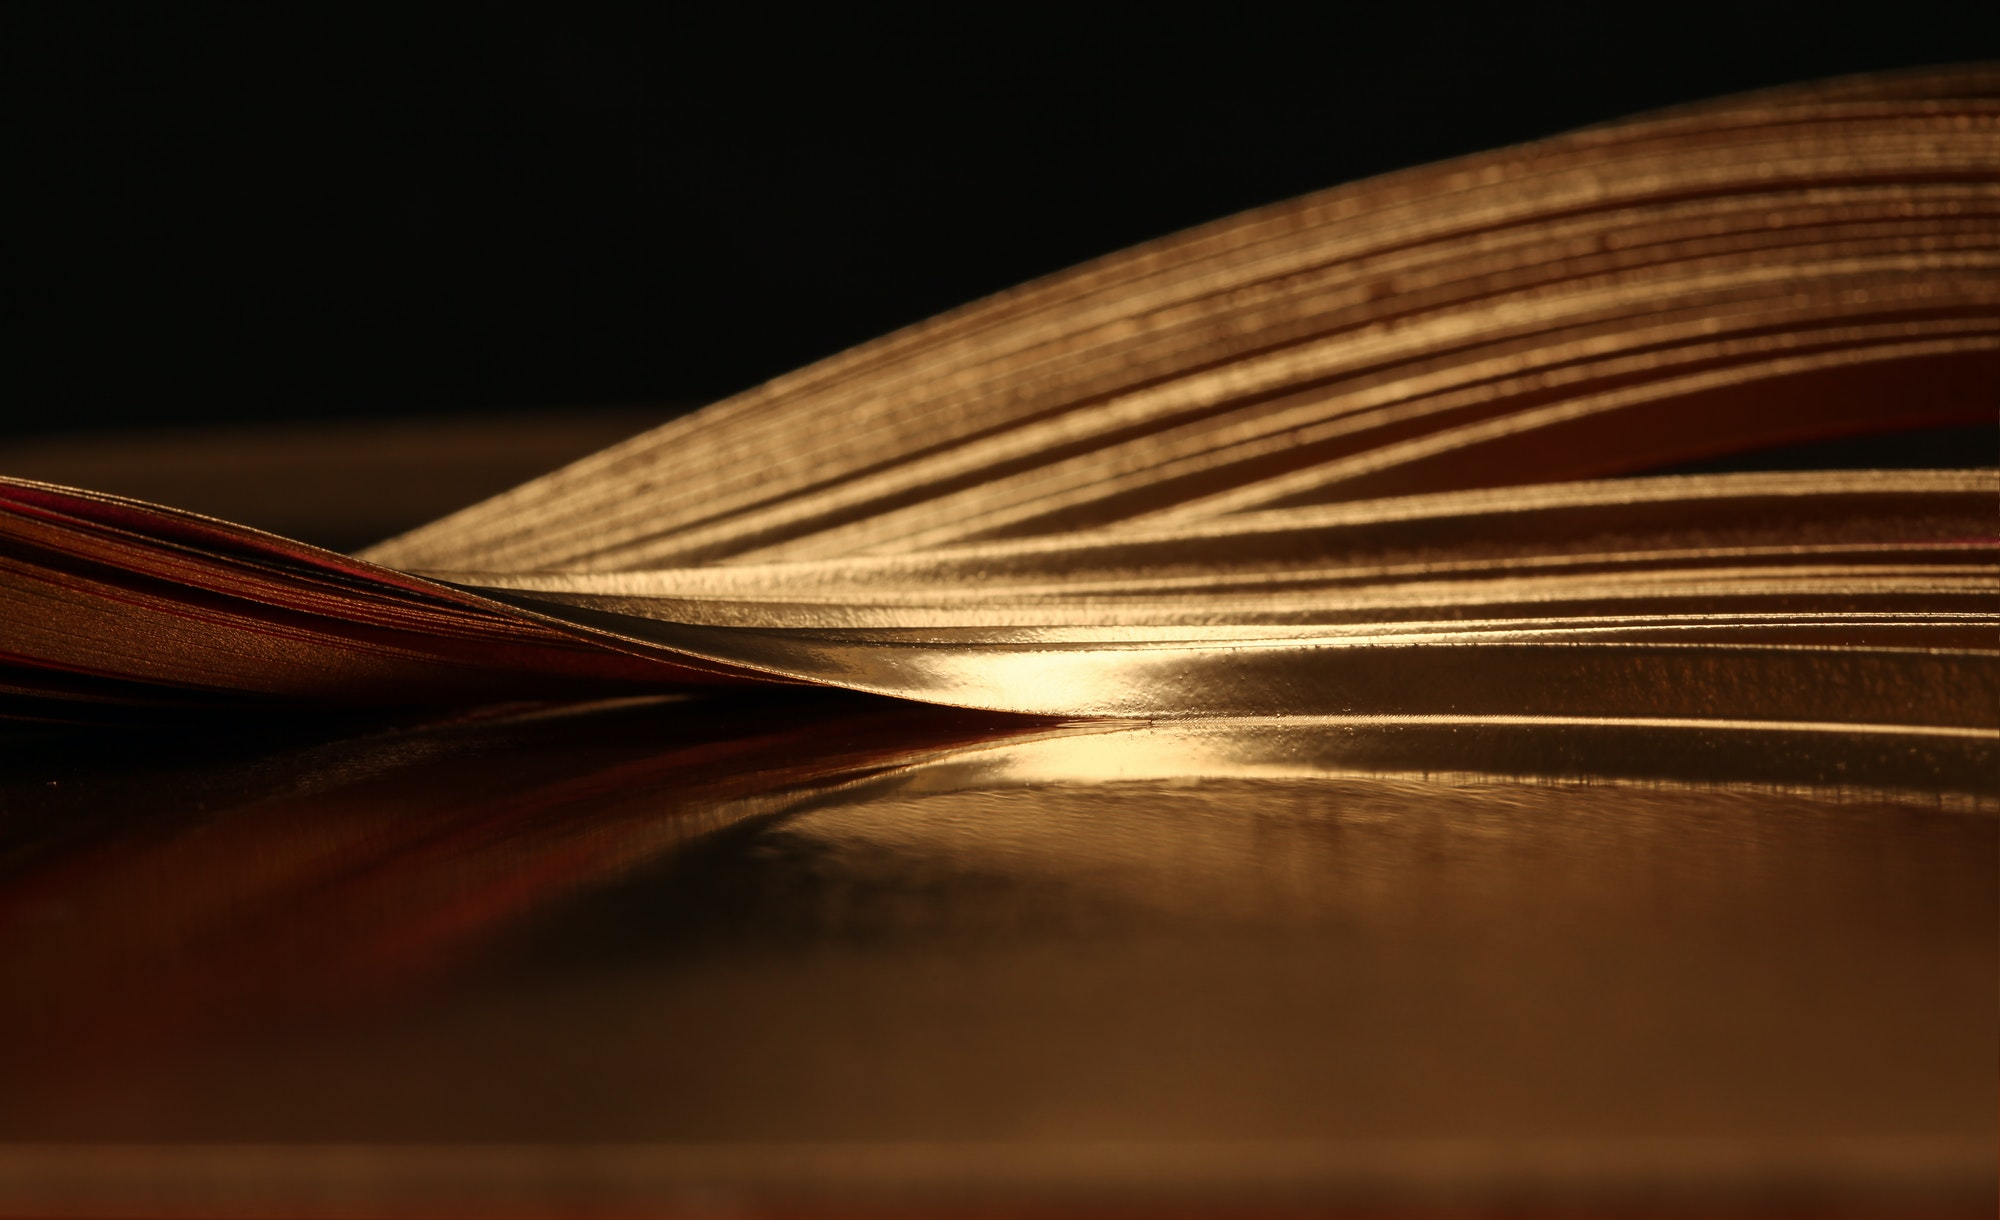 Soft focus Abstract background. Gold (bronze) paper wave on black.